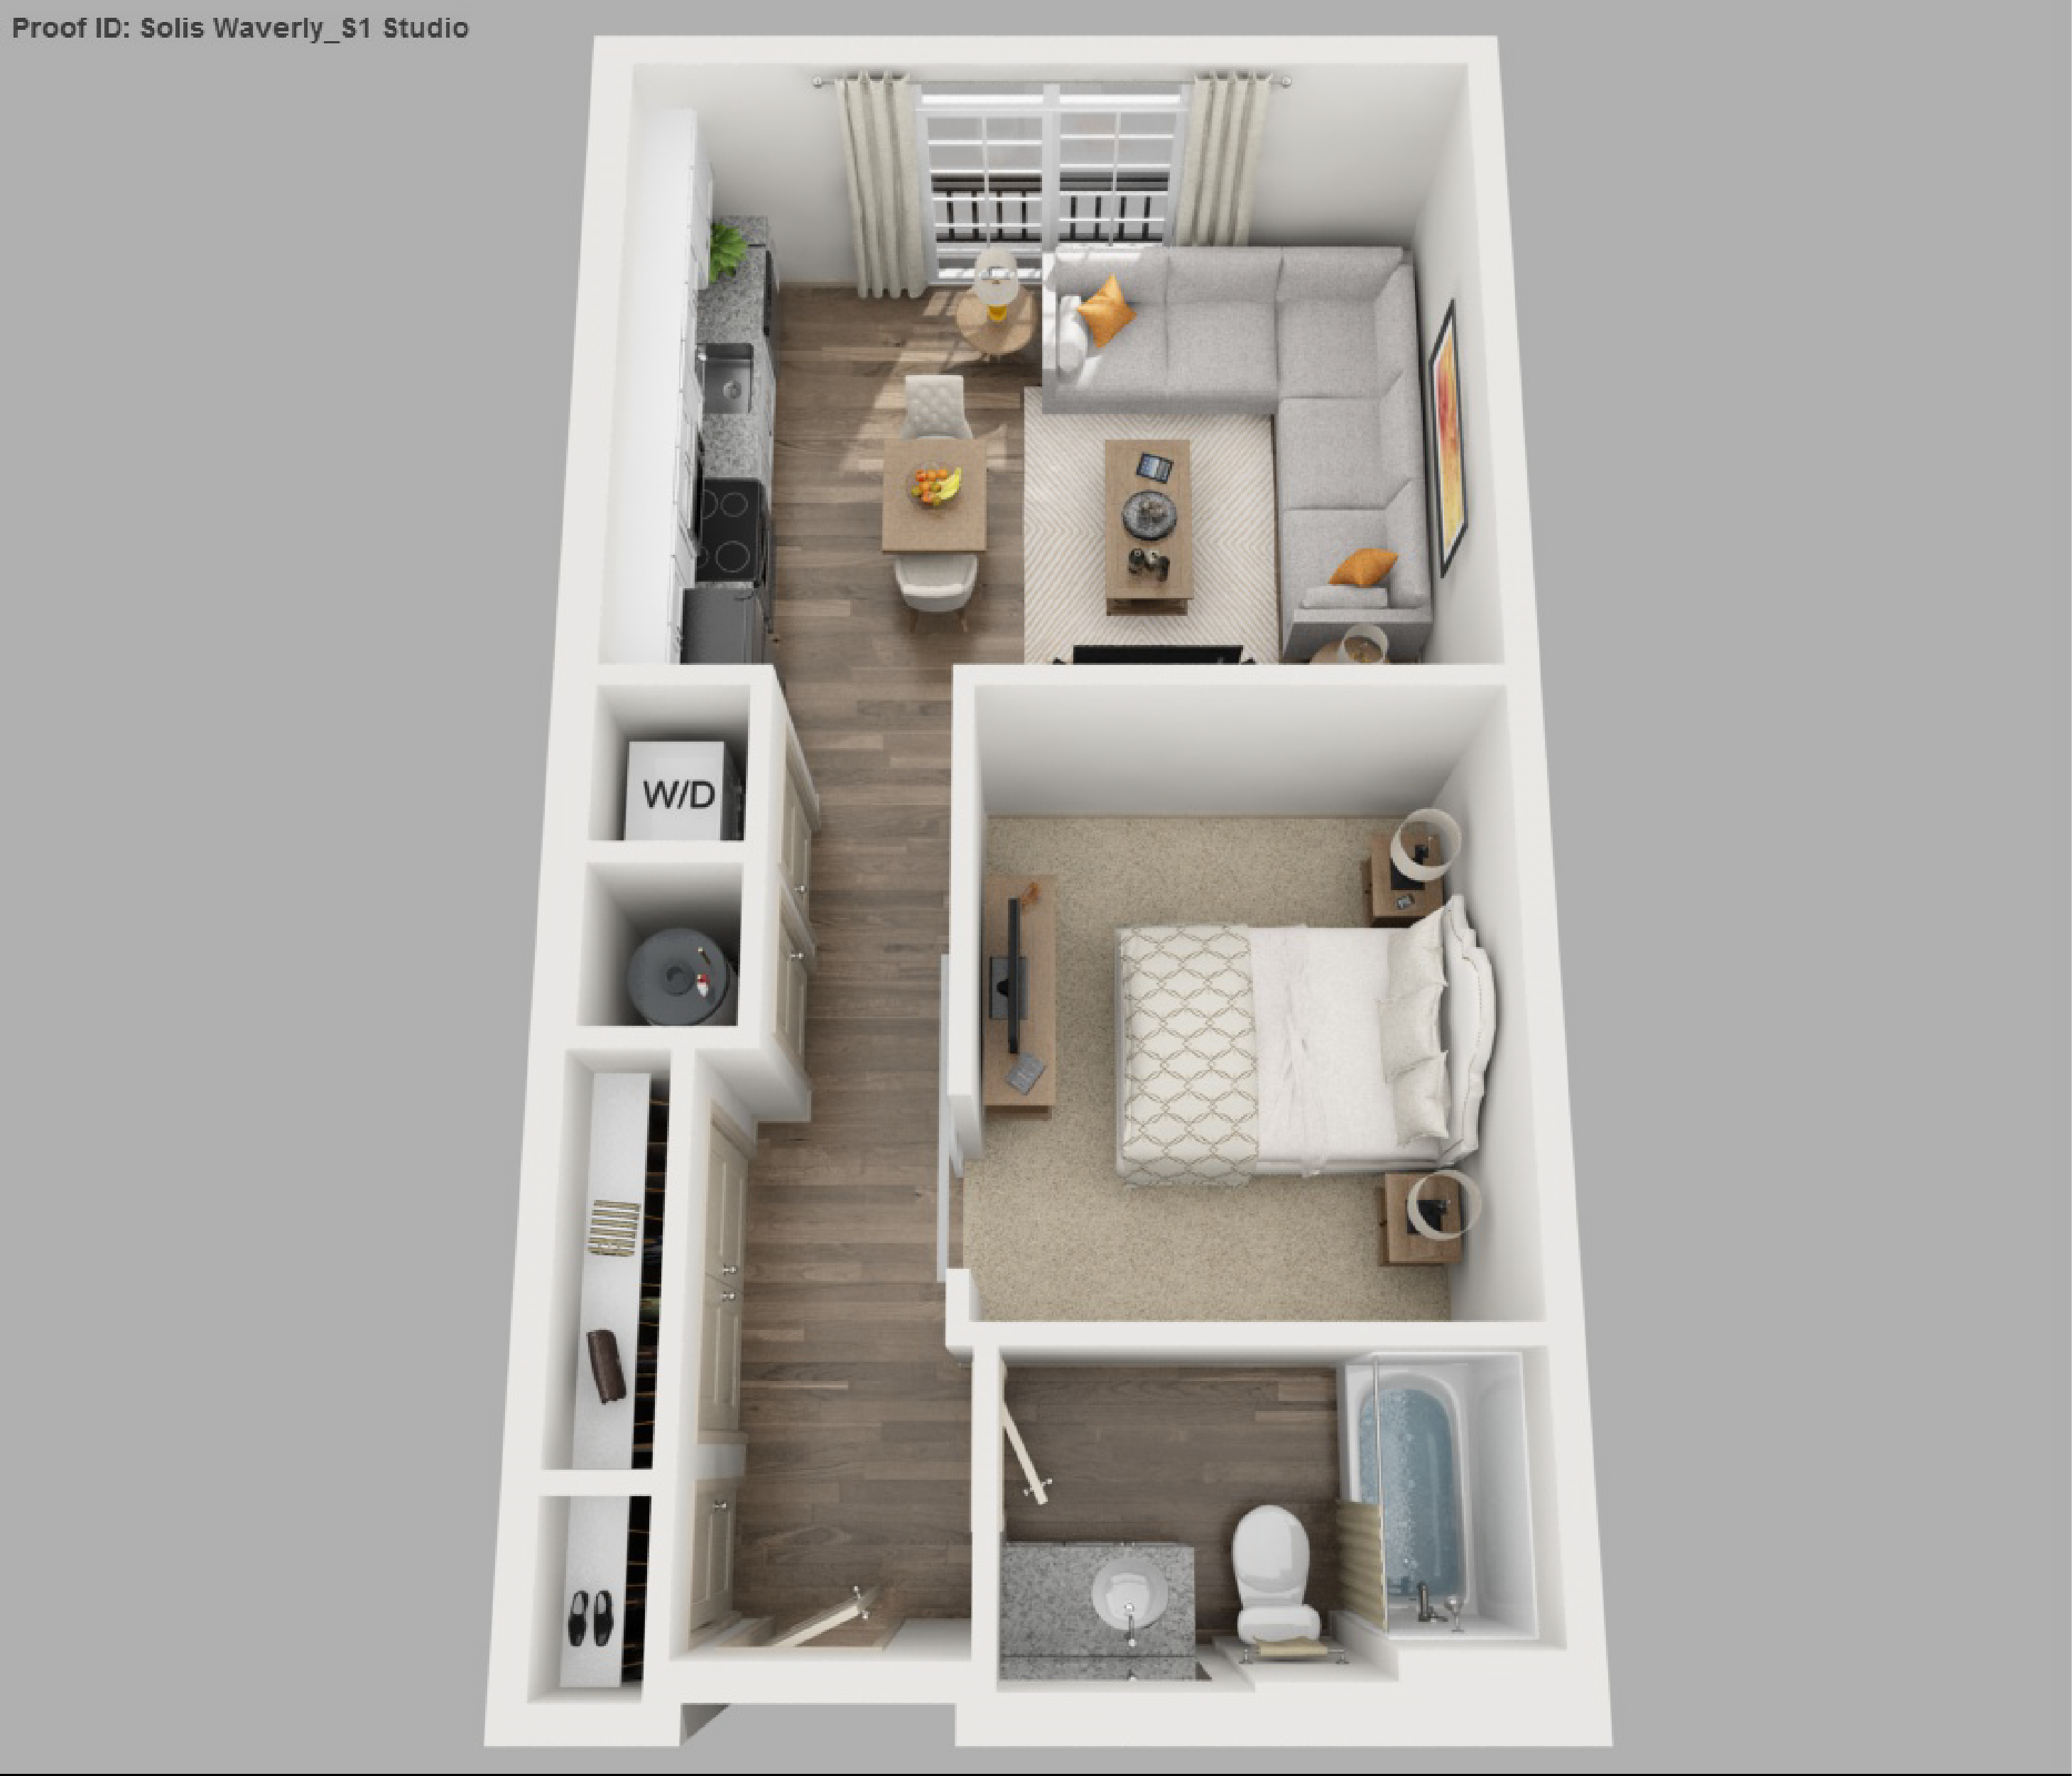 Solis apartments floorplans waverly for Studio layout plan